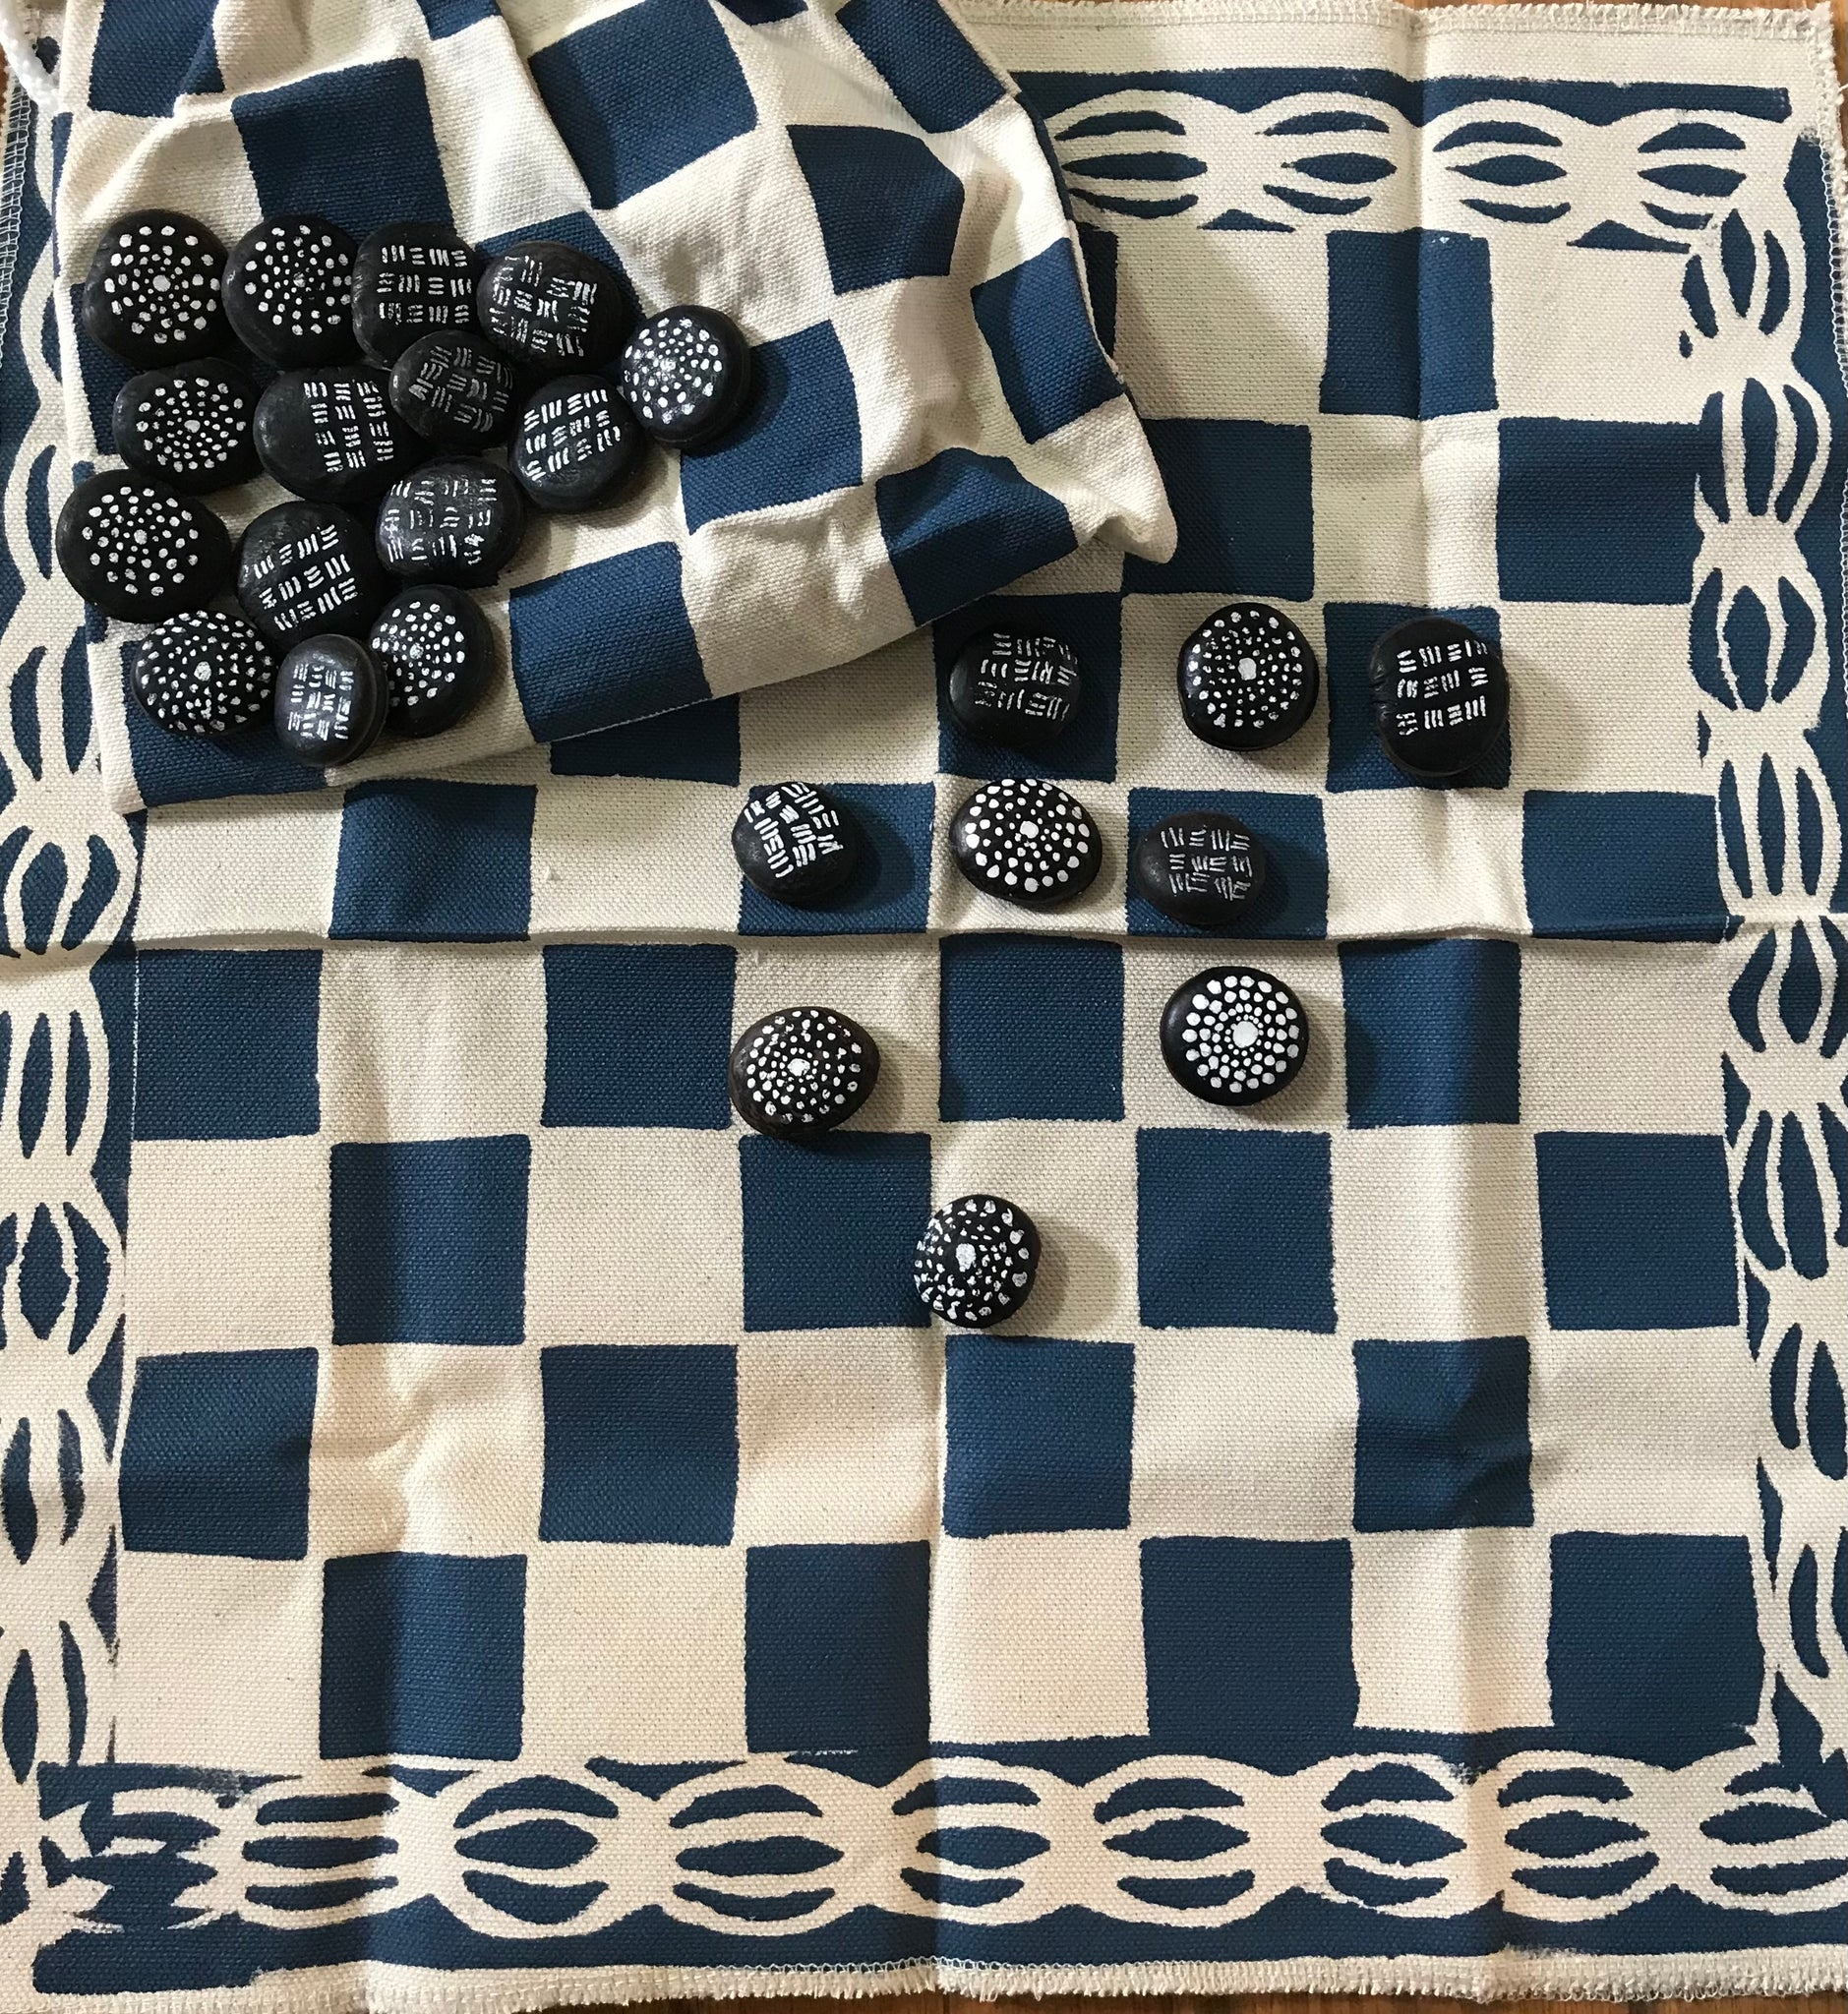 Handmade checkers set- Blue